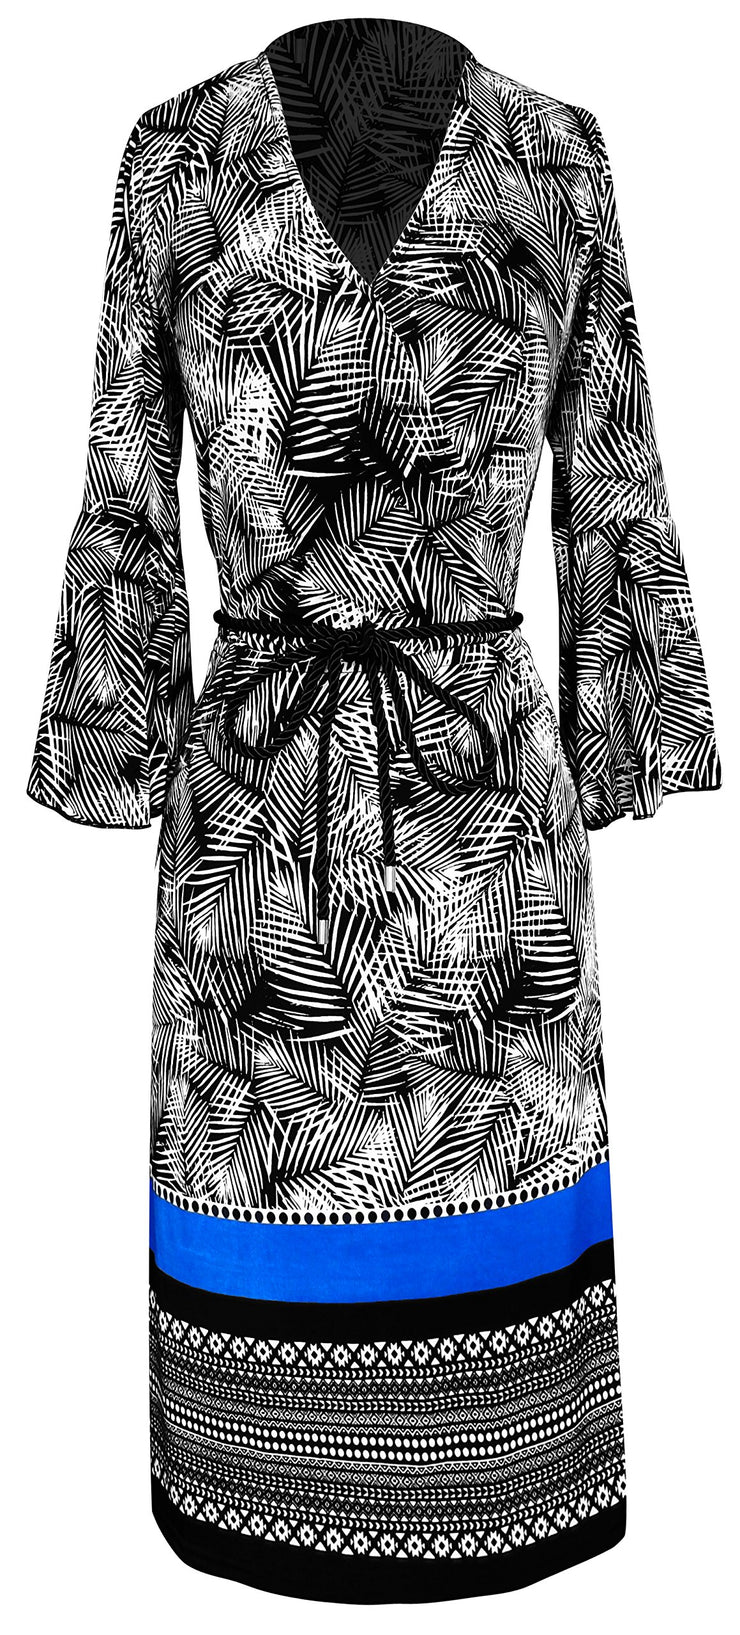 Boho Tribal Surplice Mid-Length Shift Dress with 3/4 Bell Sleeves (XL, Black & White)